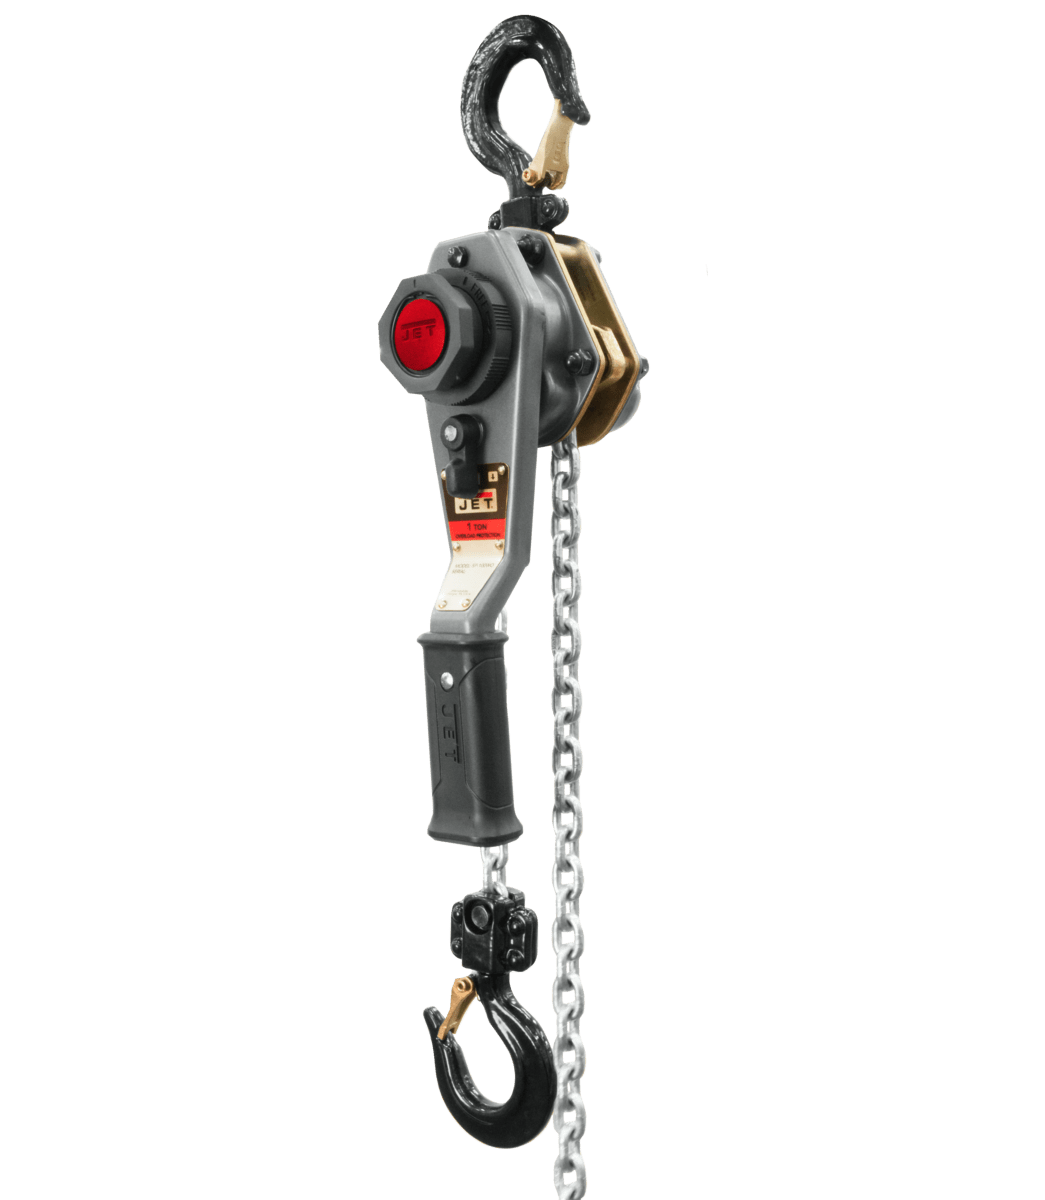 JLH Series 1 Ton Lever Hoist, 10' Lift with Overload